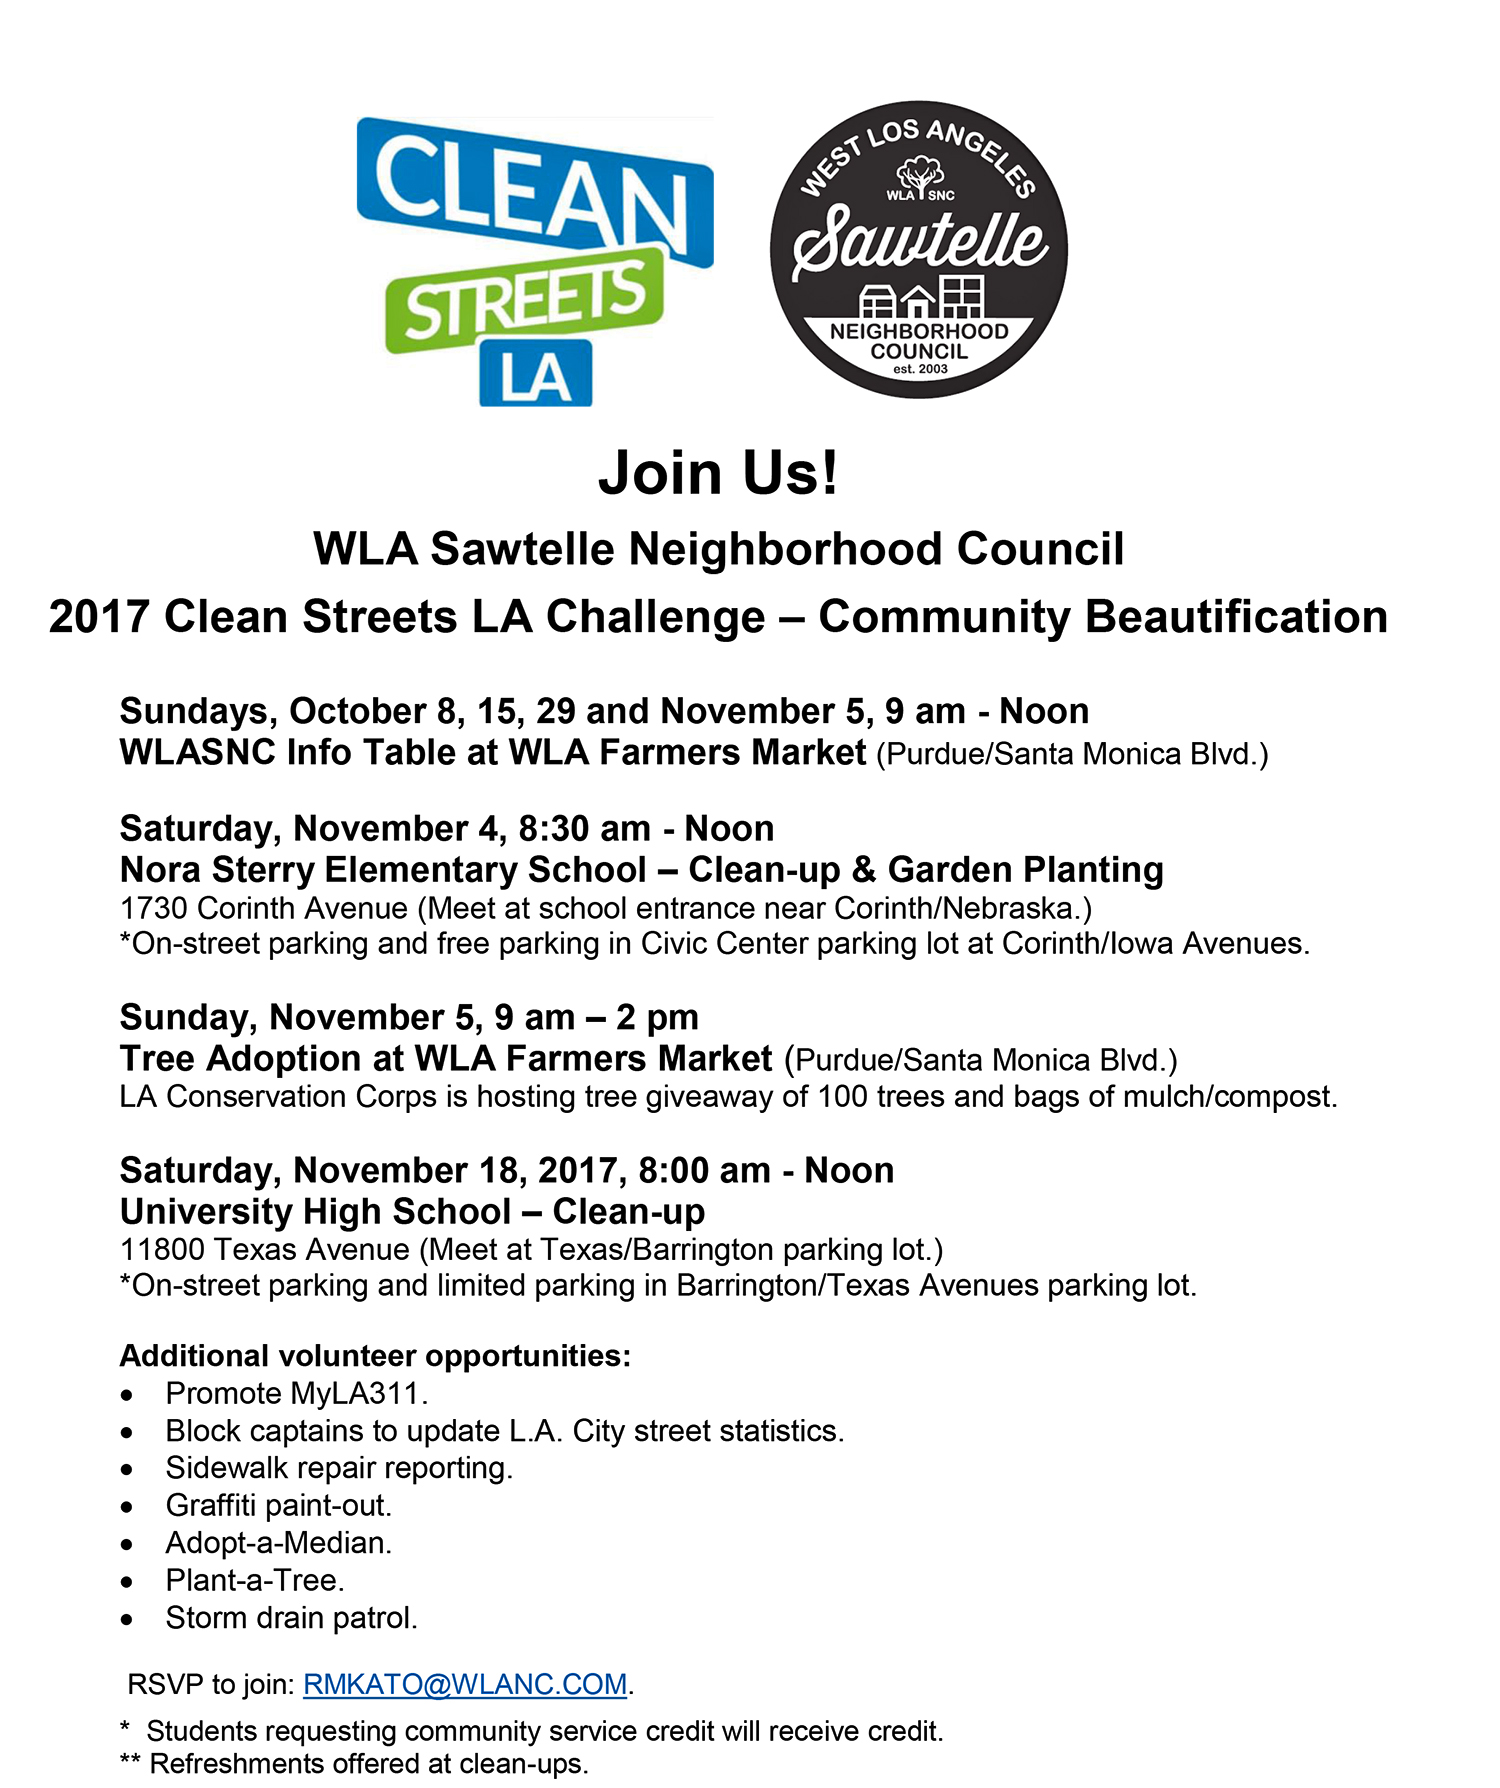 FLYER_2017 Clean Streets_Community Events_2017Oct7.jpg